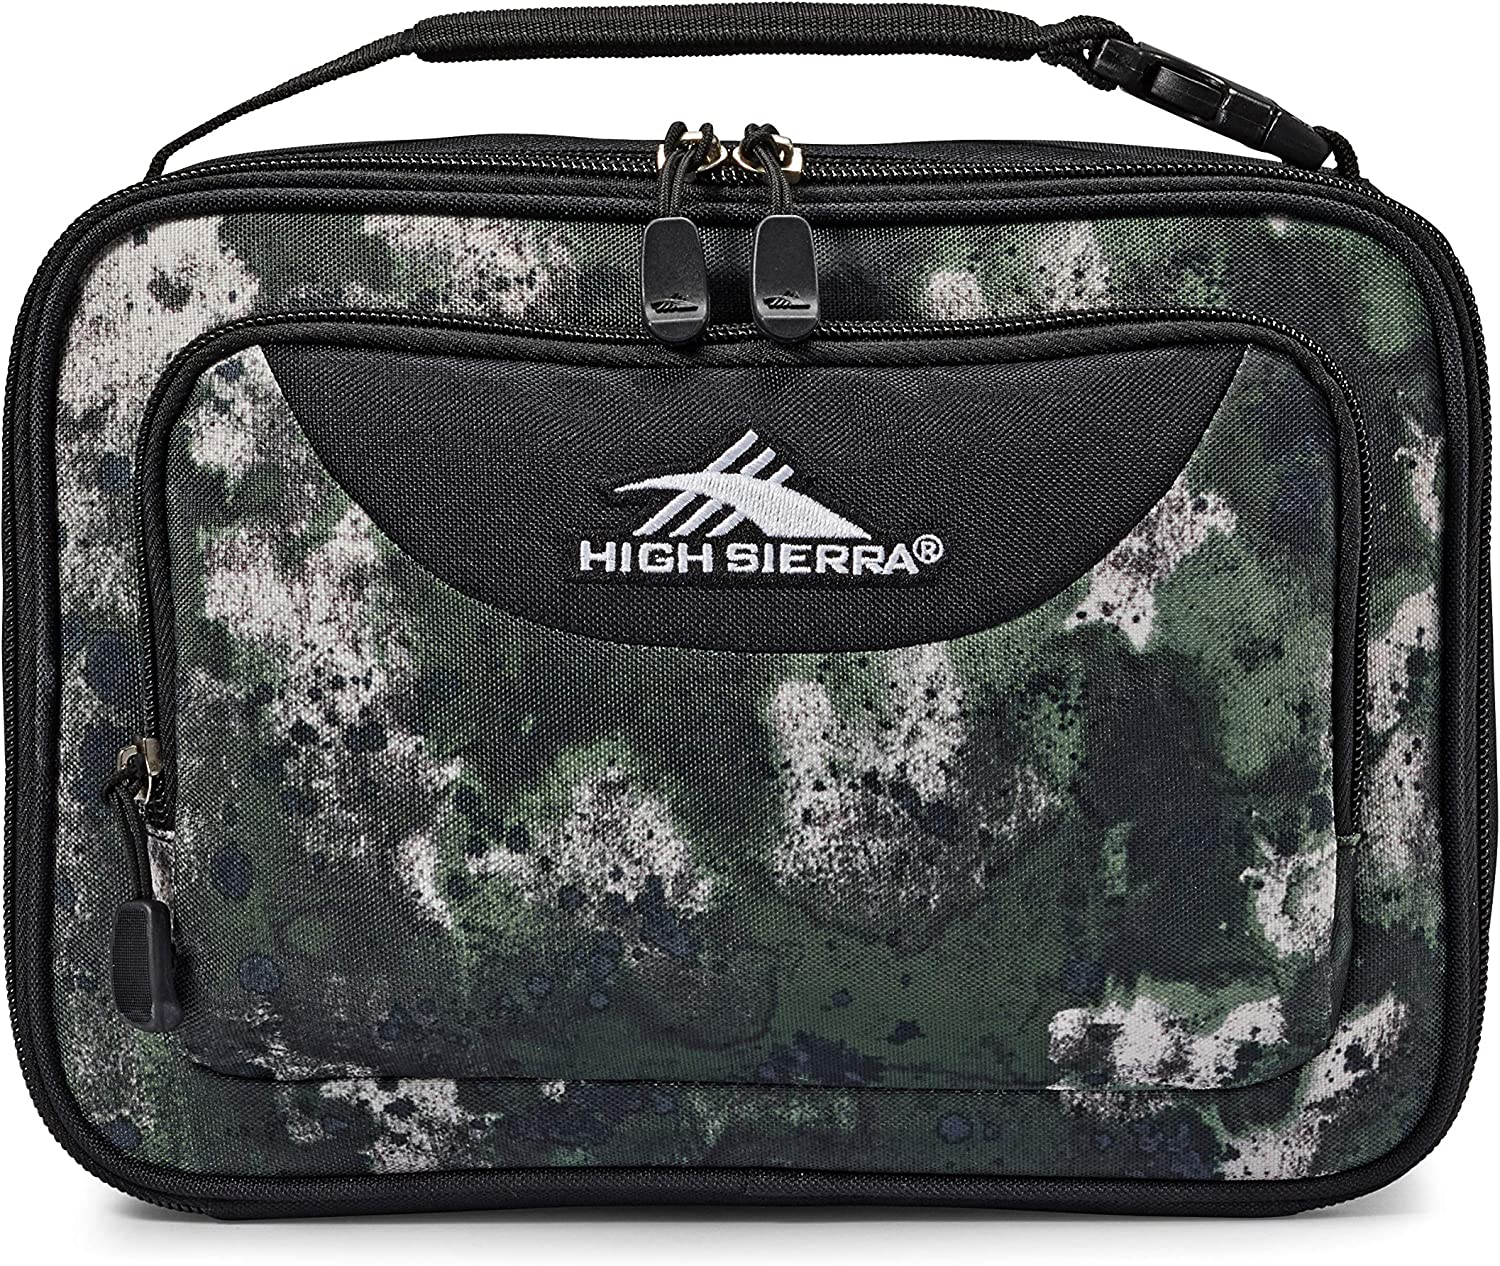 High Sierra Single Compartment Lunch Bag, One Size, Urban Camo